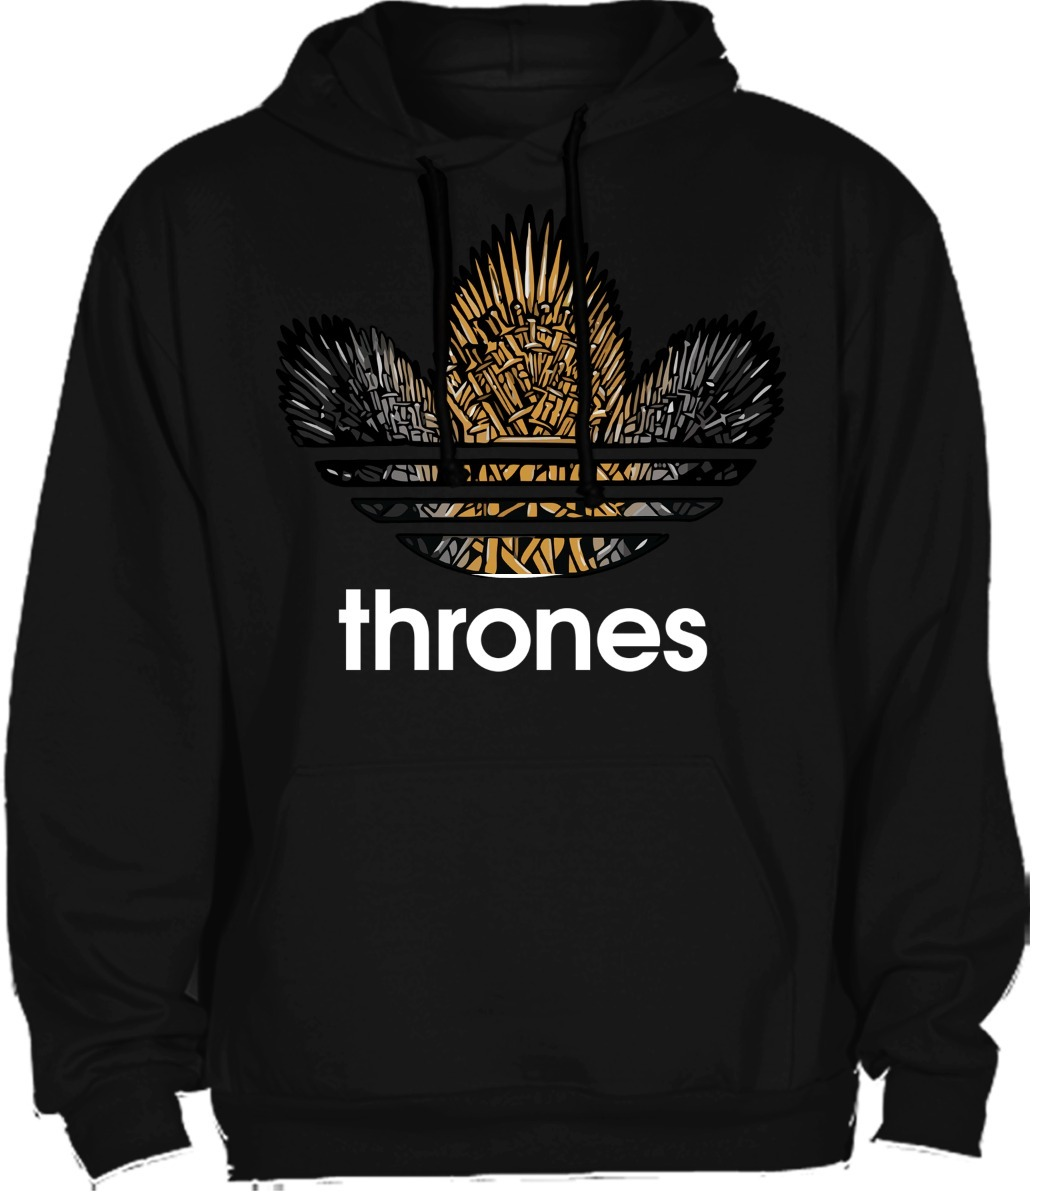 00 381 Envio Thrones Mercado Parodia Of Game Gratis Sudadera En Yvq0fxZ